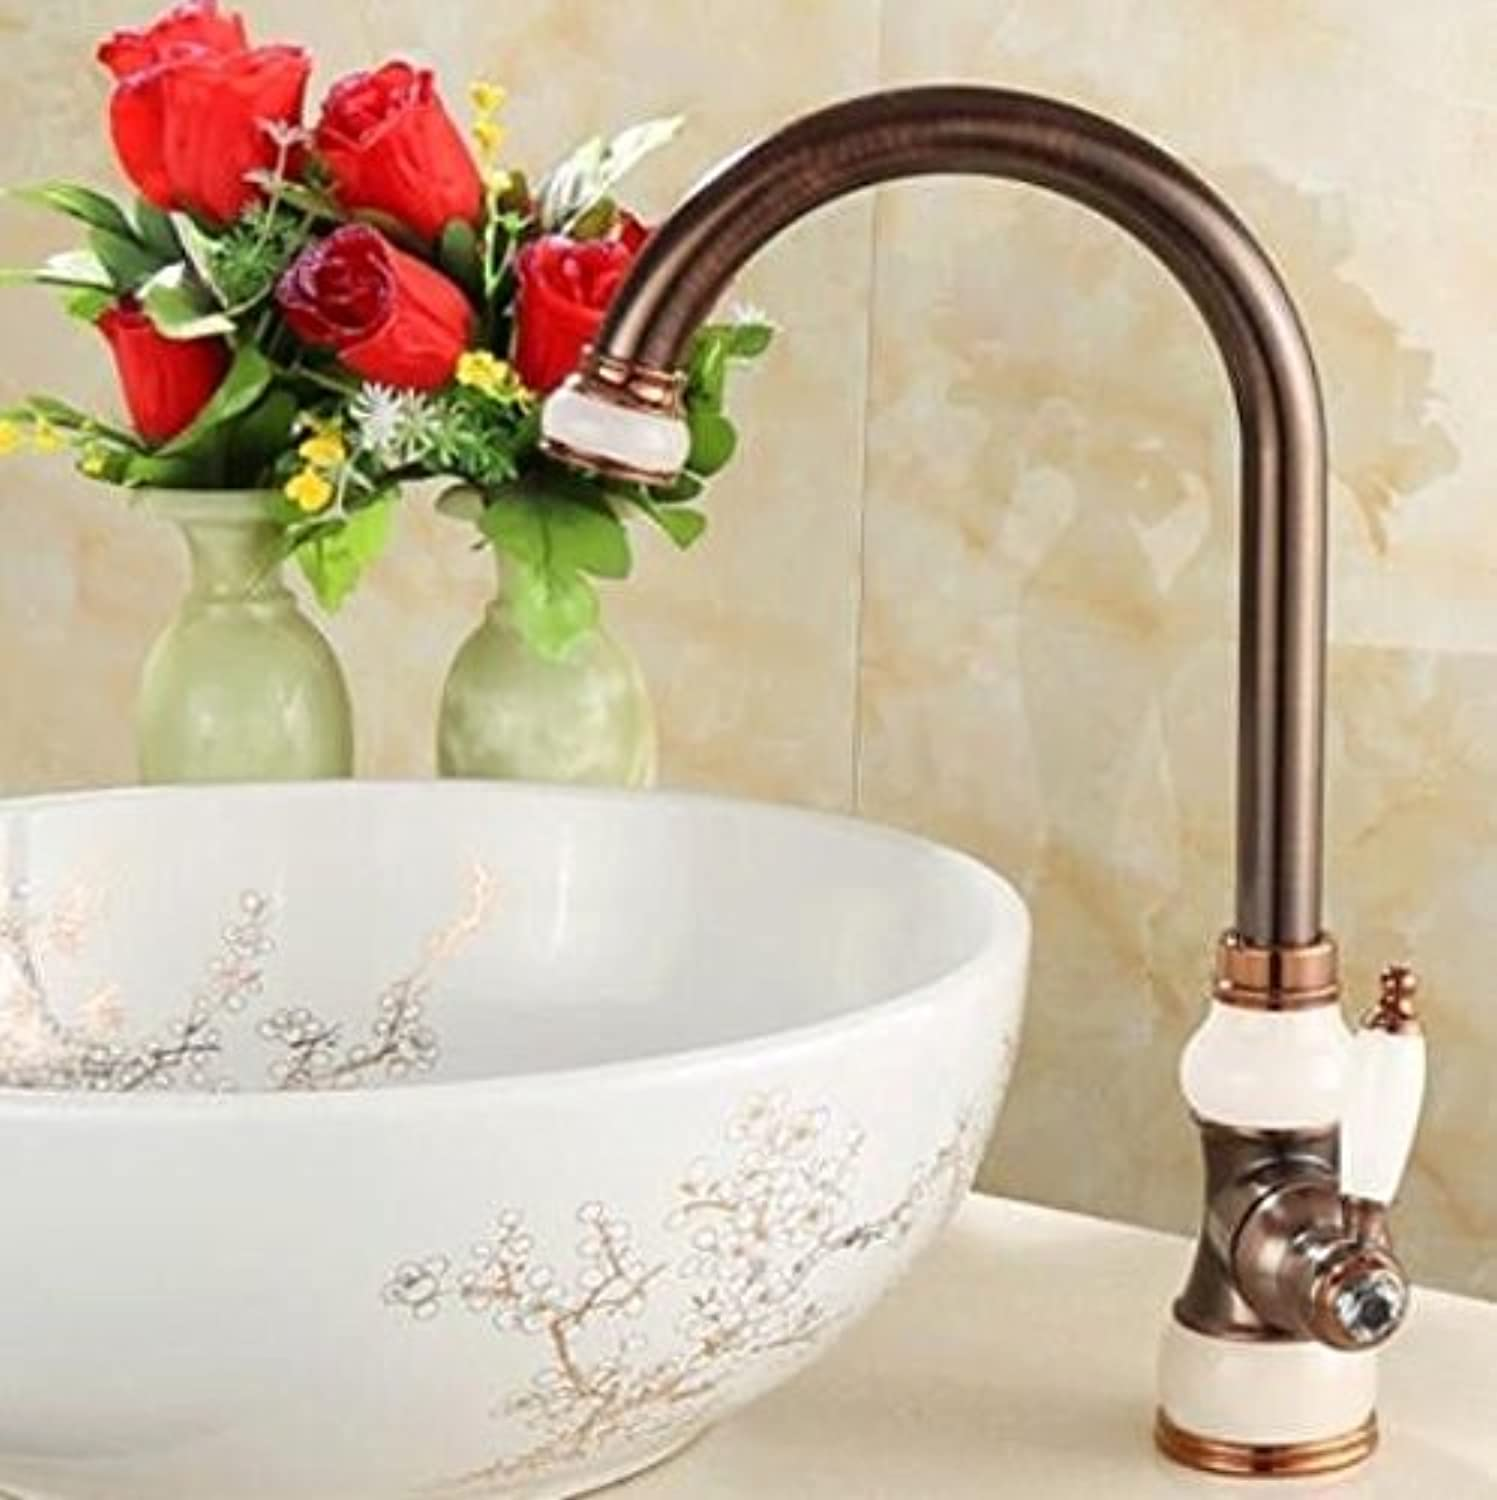 Decorry American Natural Jade, All Copper Stand, Basin, Cold, Hot Water Faucet, Brown Bronze, Antique European Kitchen Sink, Kitchen Faucet,C